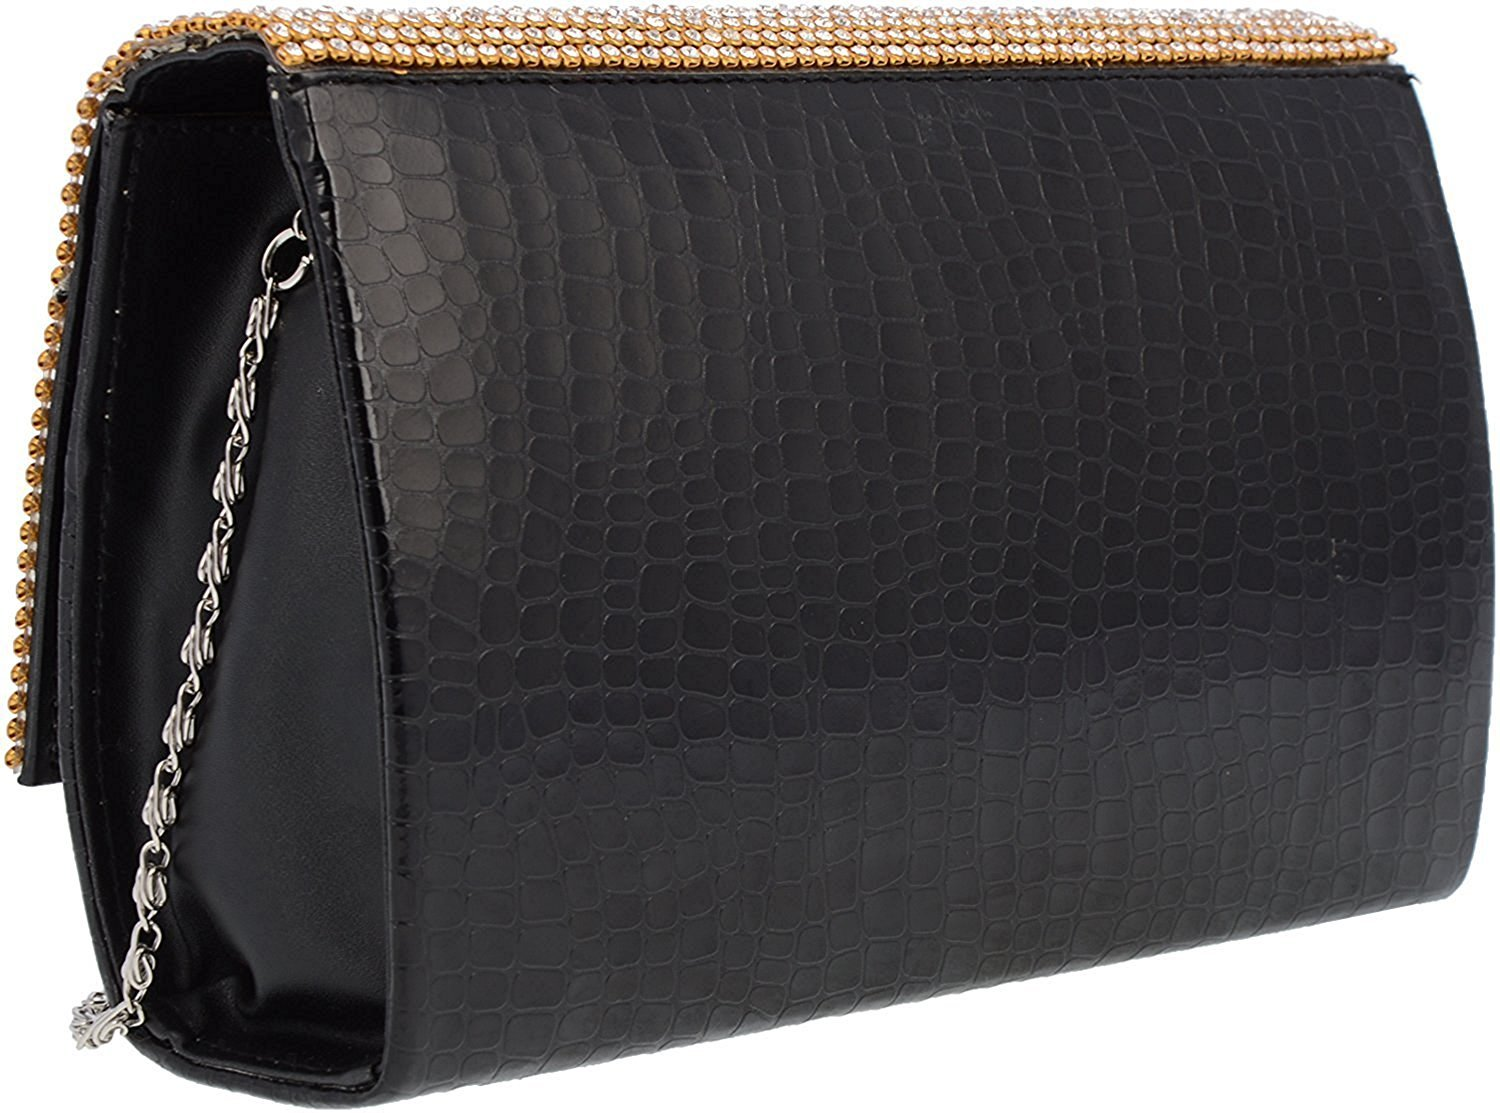 Cocktail Clutch (Black) - Bagaholics Gift